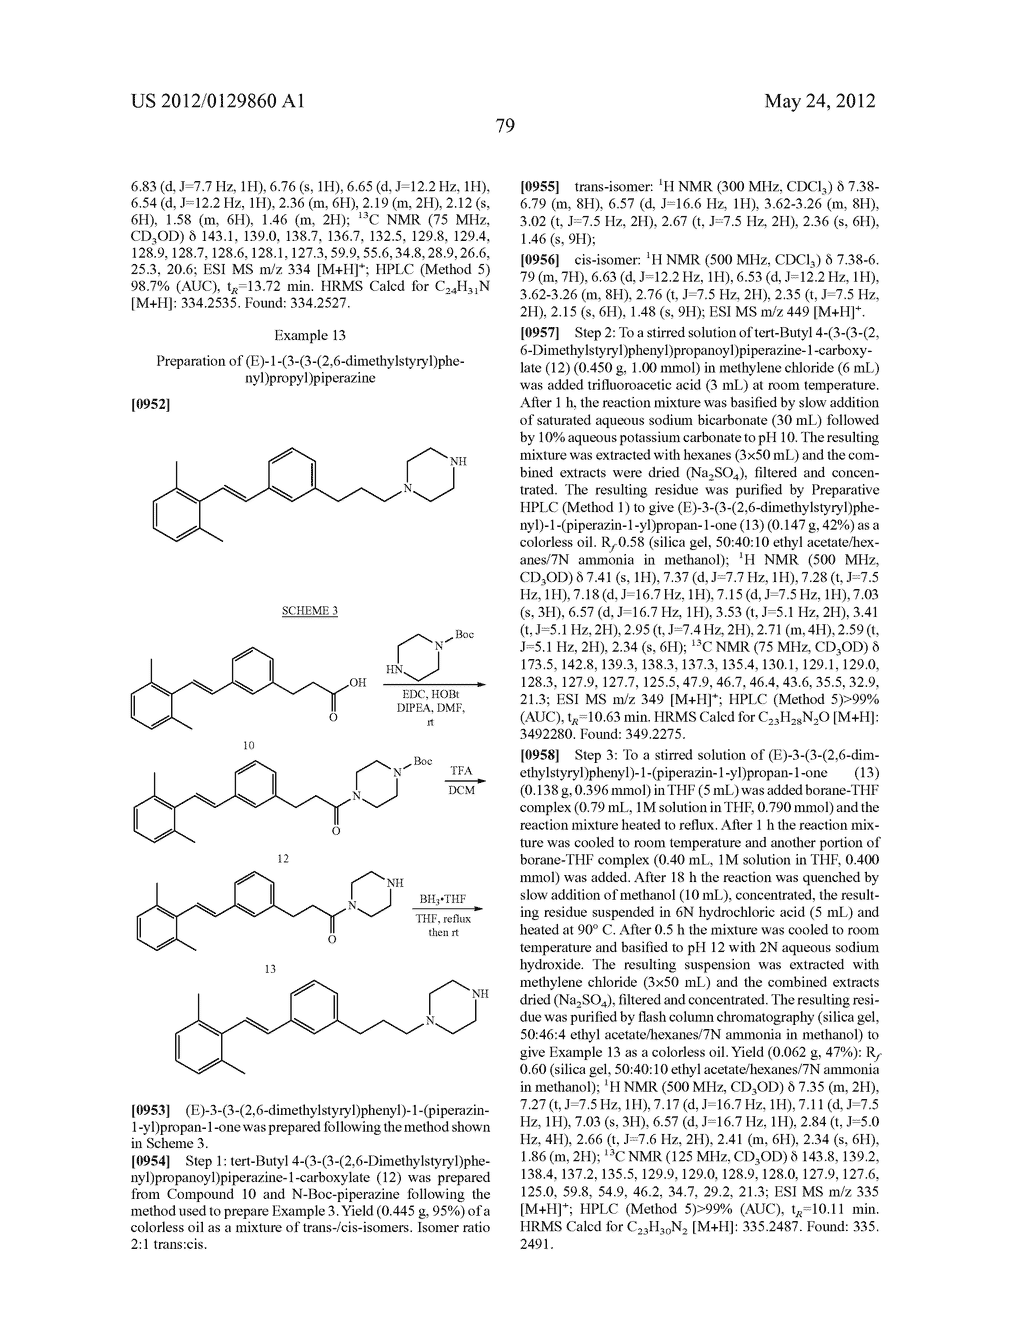 STYRENYL DERIVATIVE COMPOUNDS FOR TREATING OPHTHALMIC DISEASES AND     DISORDERS - diagram, schematic, and image 82